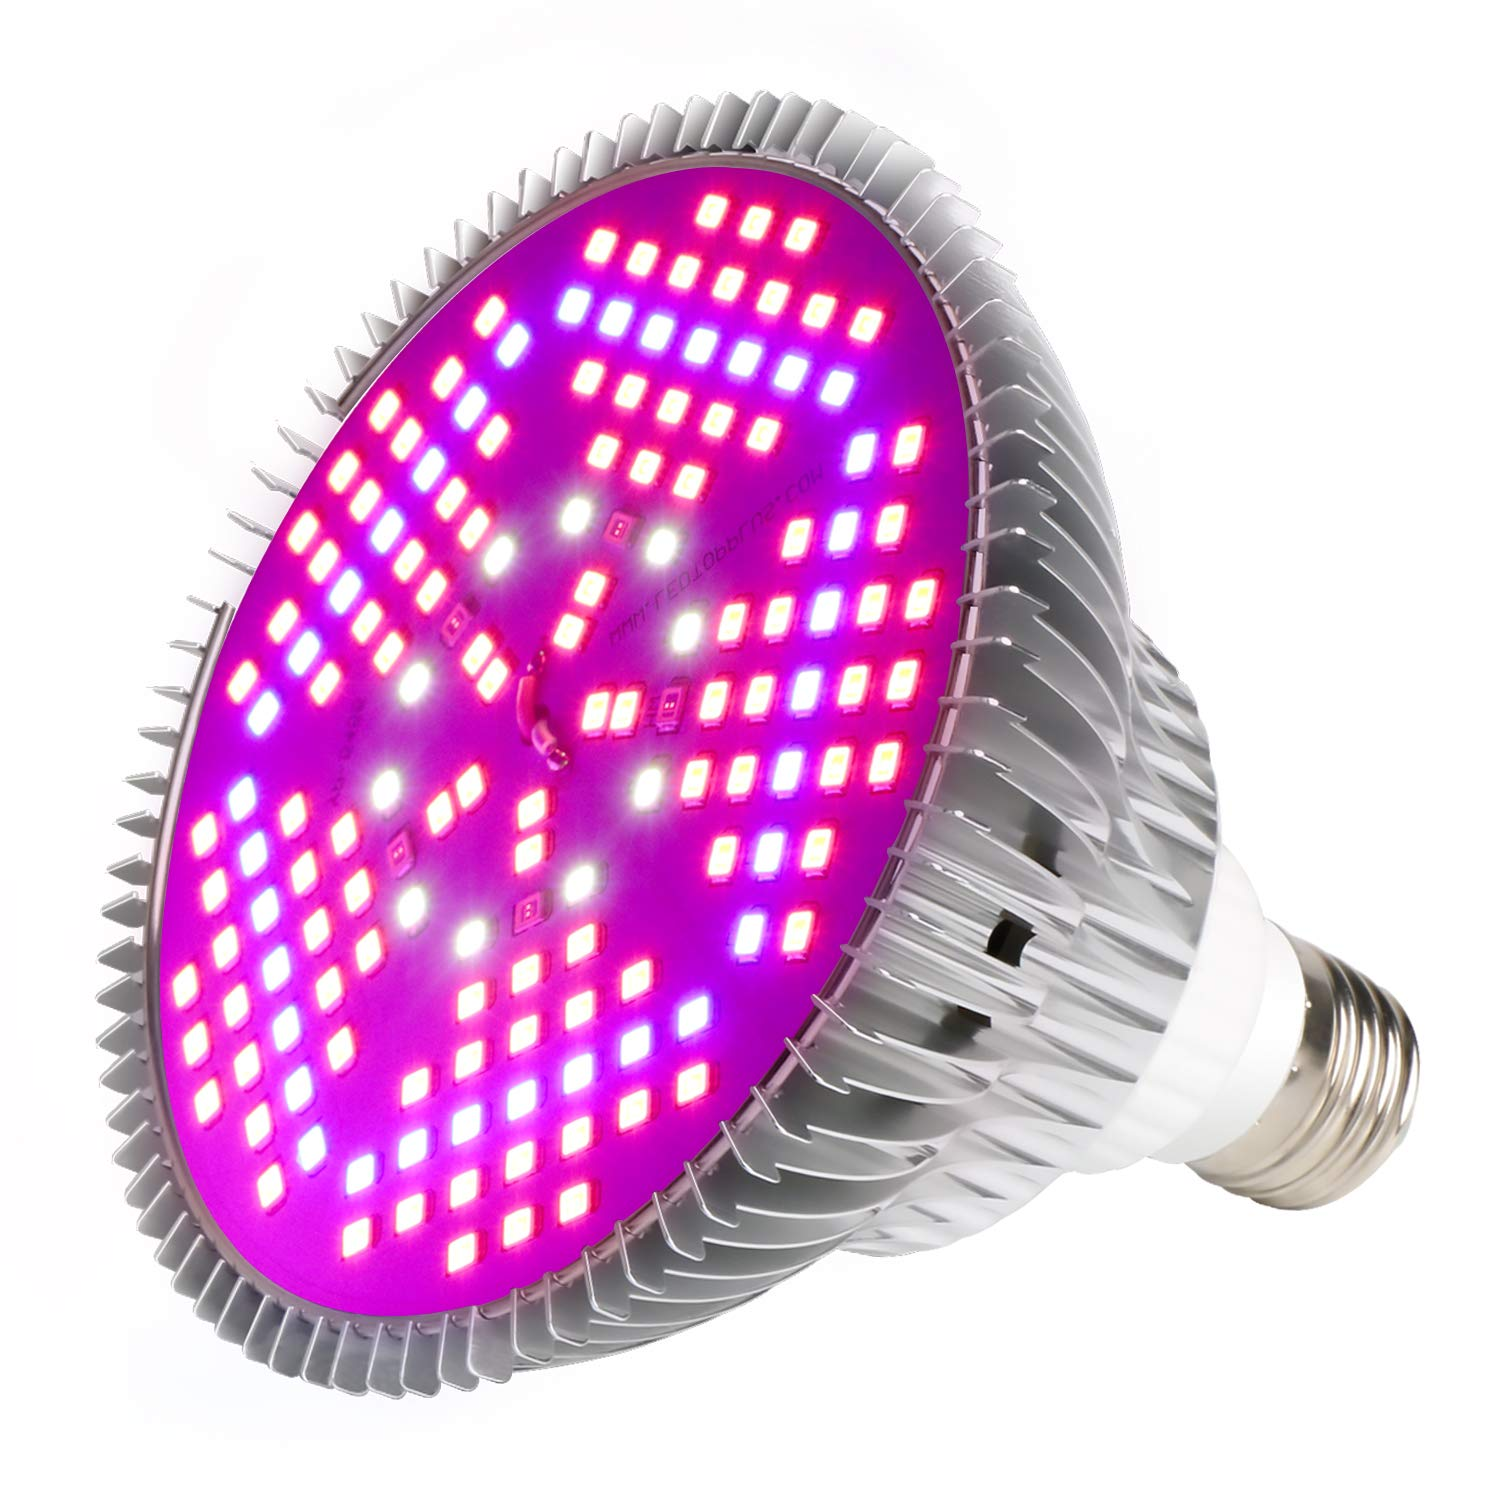 100W Led Grow Light Bulb, Plant Lights Full Spectrum for Indoor Plants Hydroponics, Led Plants Bulbs for Flowers Tobacco Garden Greenhouse and Organic Soil (E26 120LEDs) … by MIYA